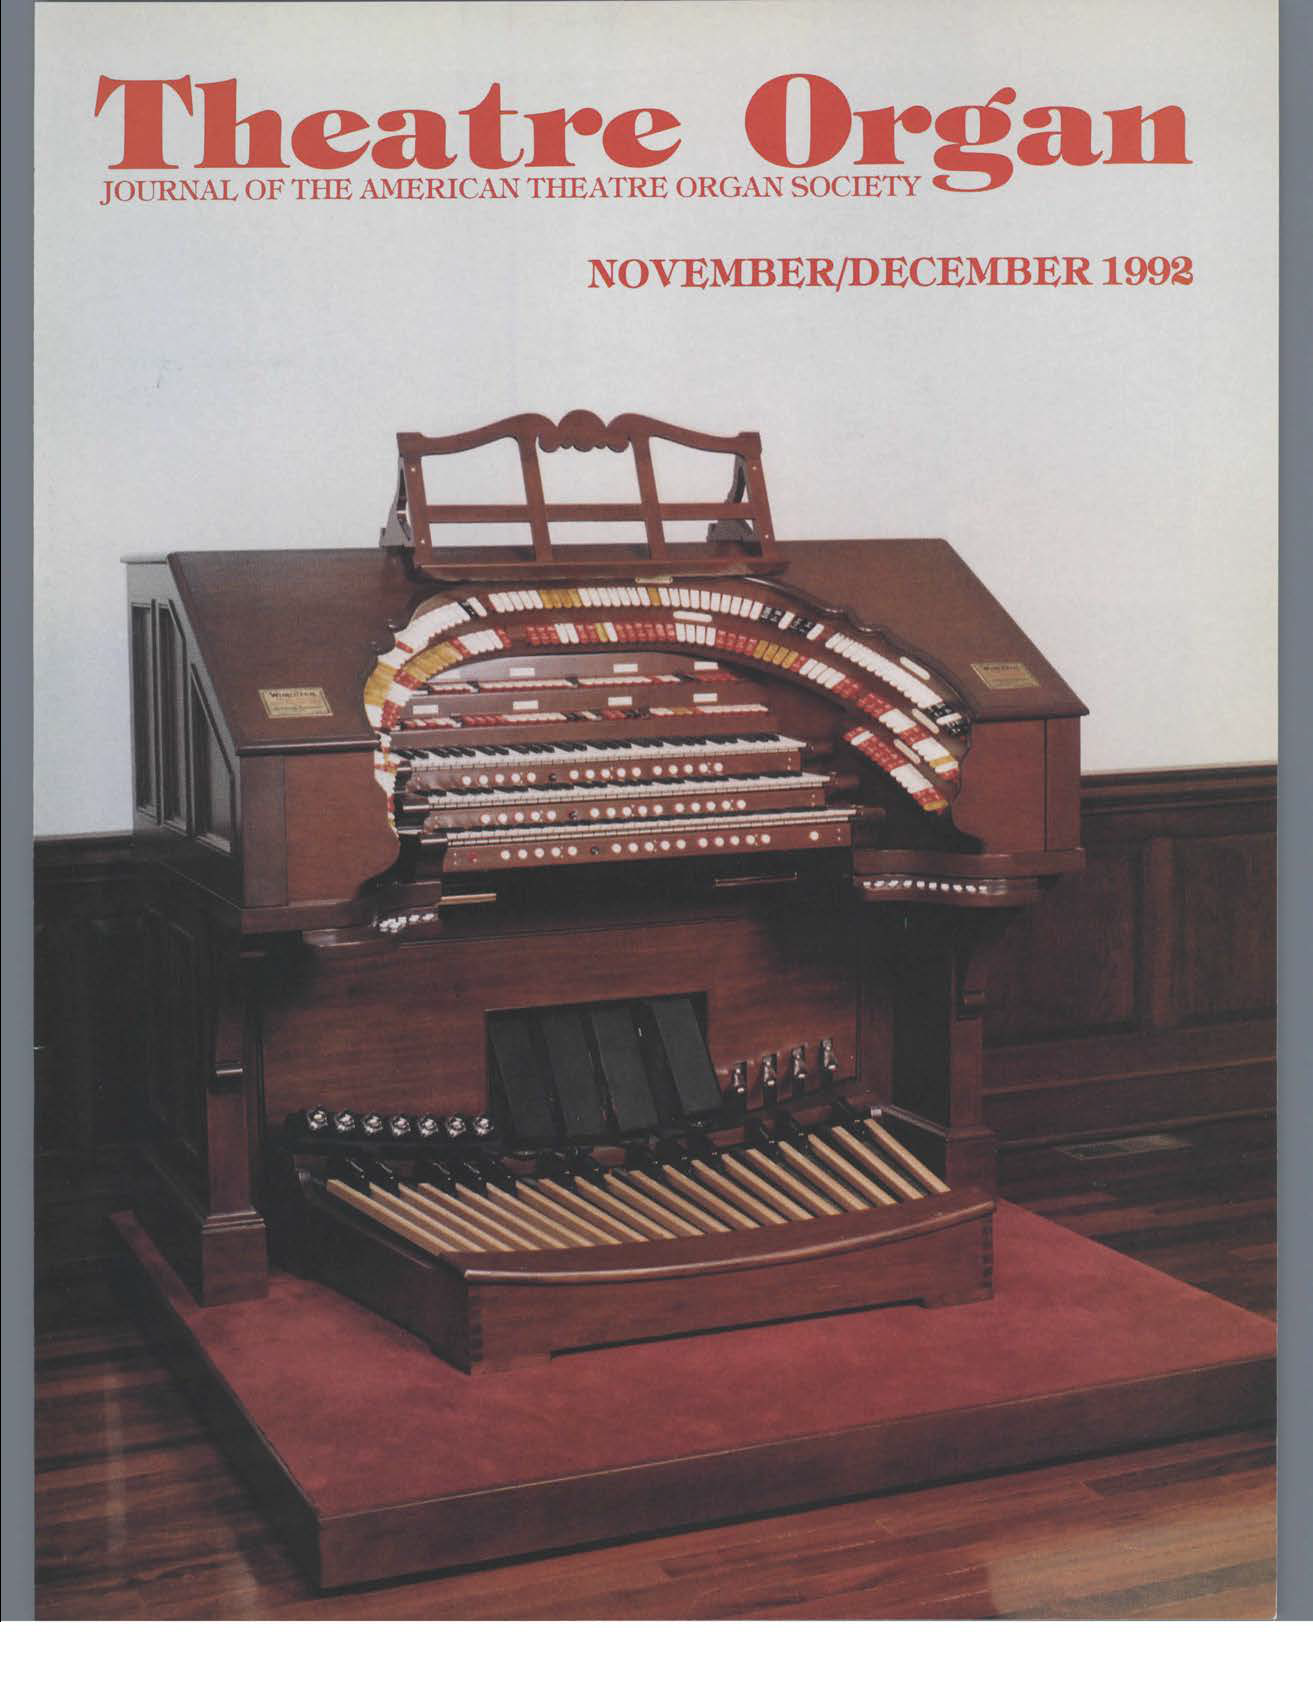 Theatre Organ, November - December 1992, Volume 34, Number 6